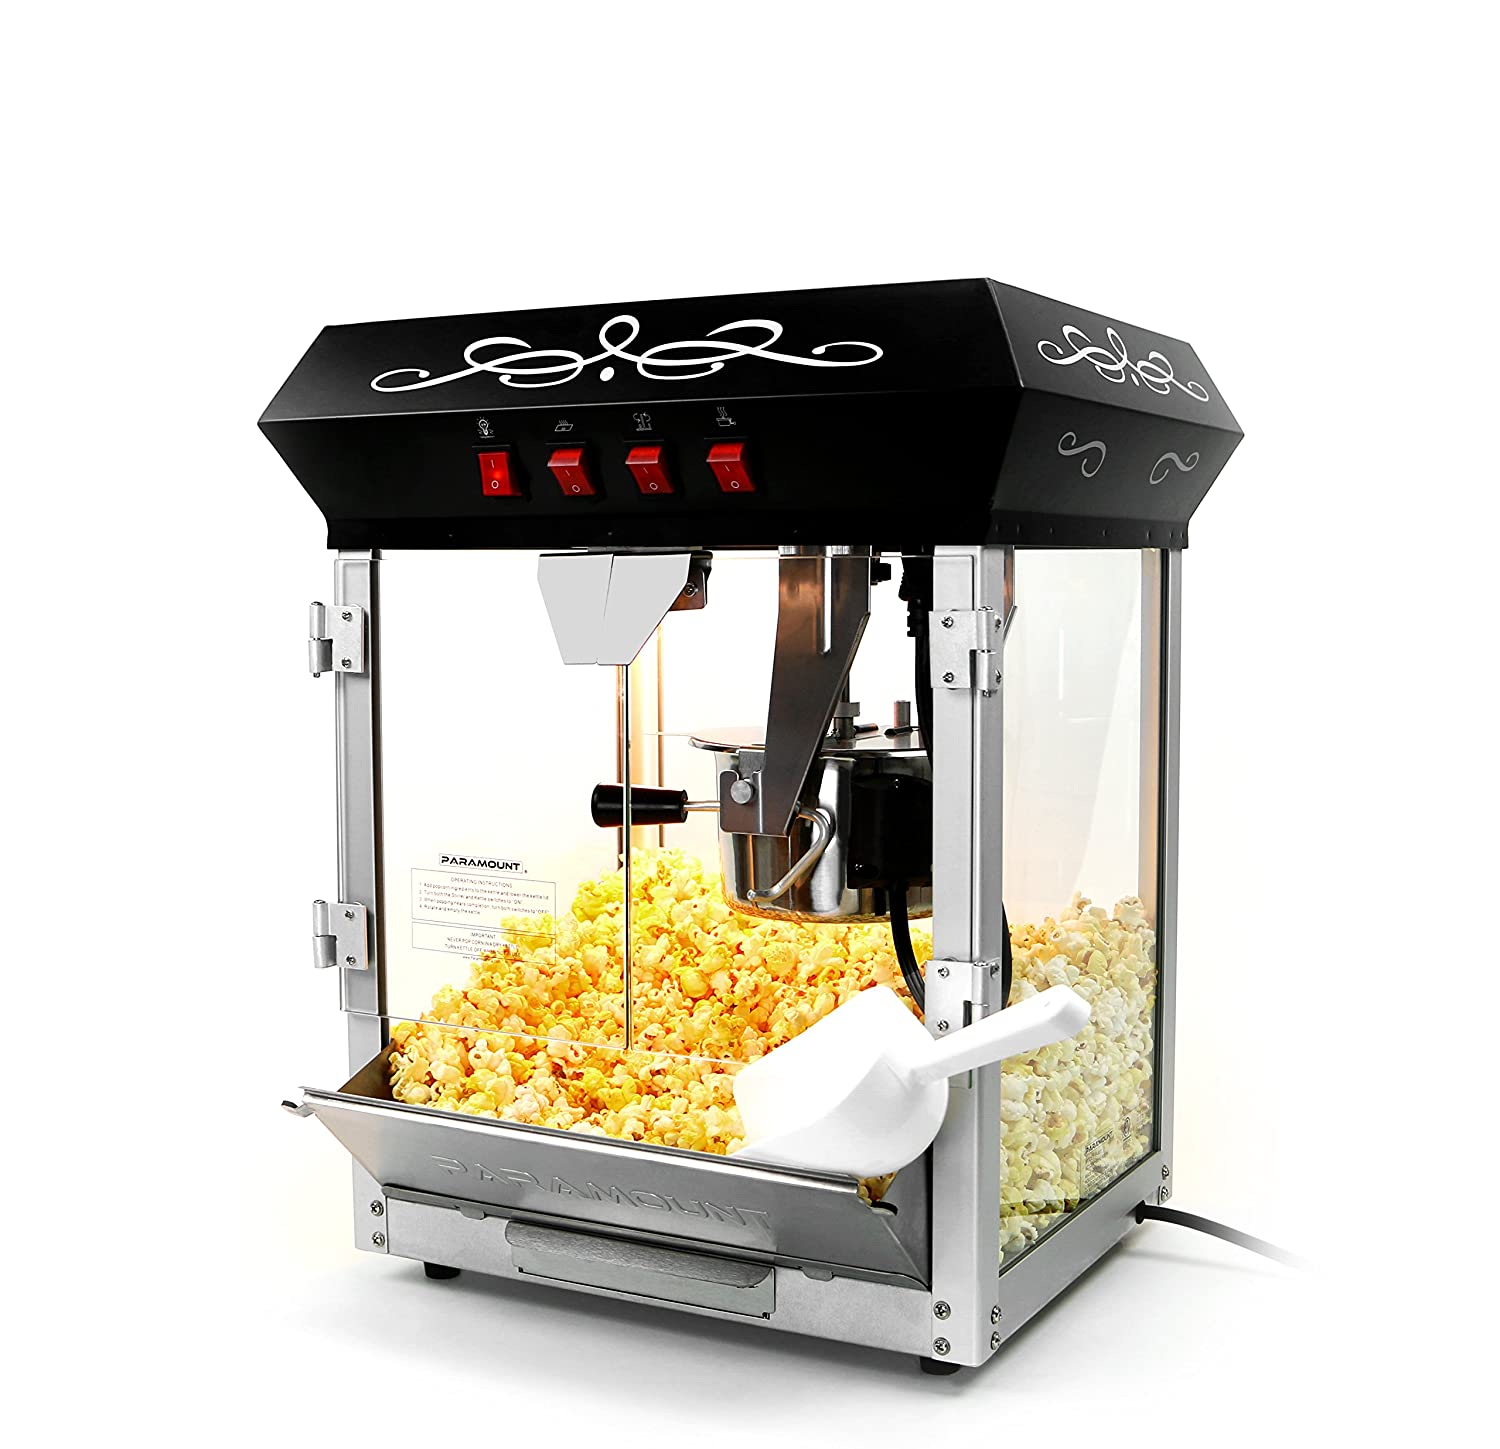 Paramount 6oz Popcorn Maker Machine – New Upgraded Feature-Rich 6 oz Hot Oil Popper Color Black